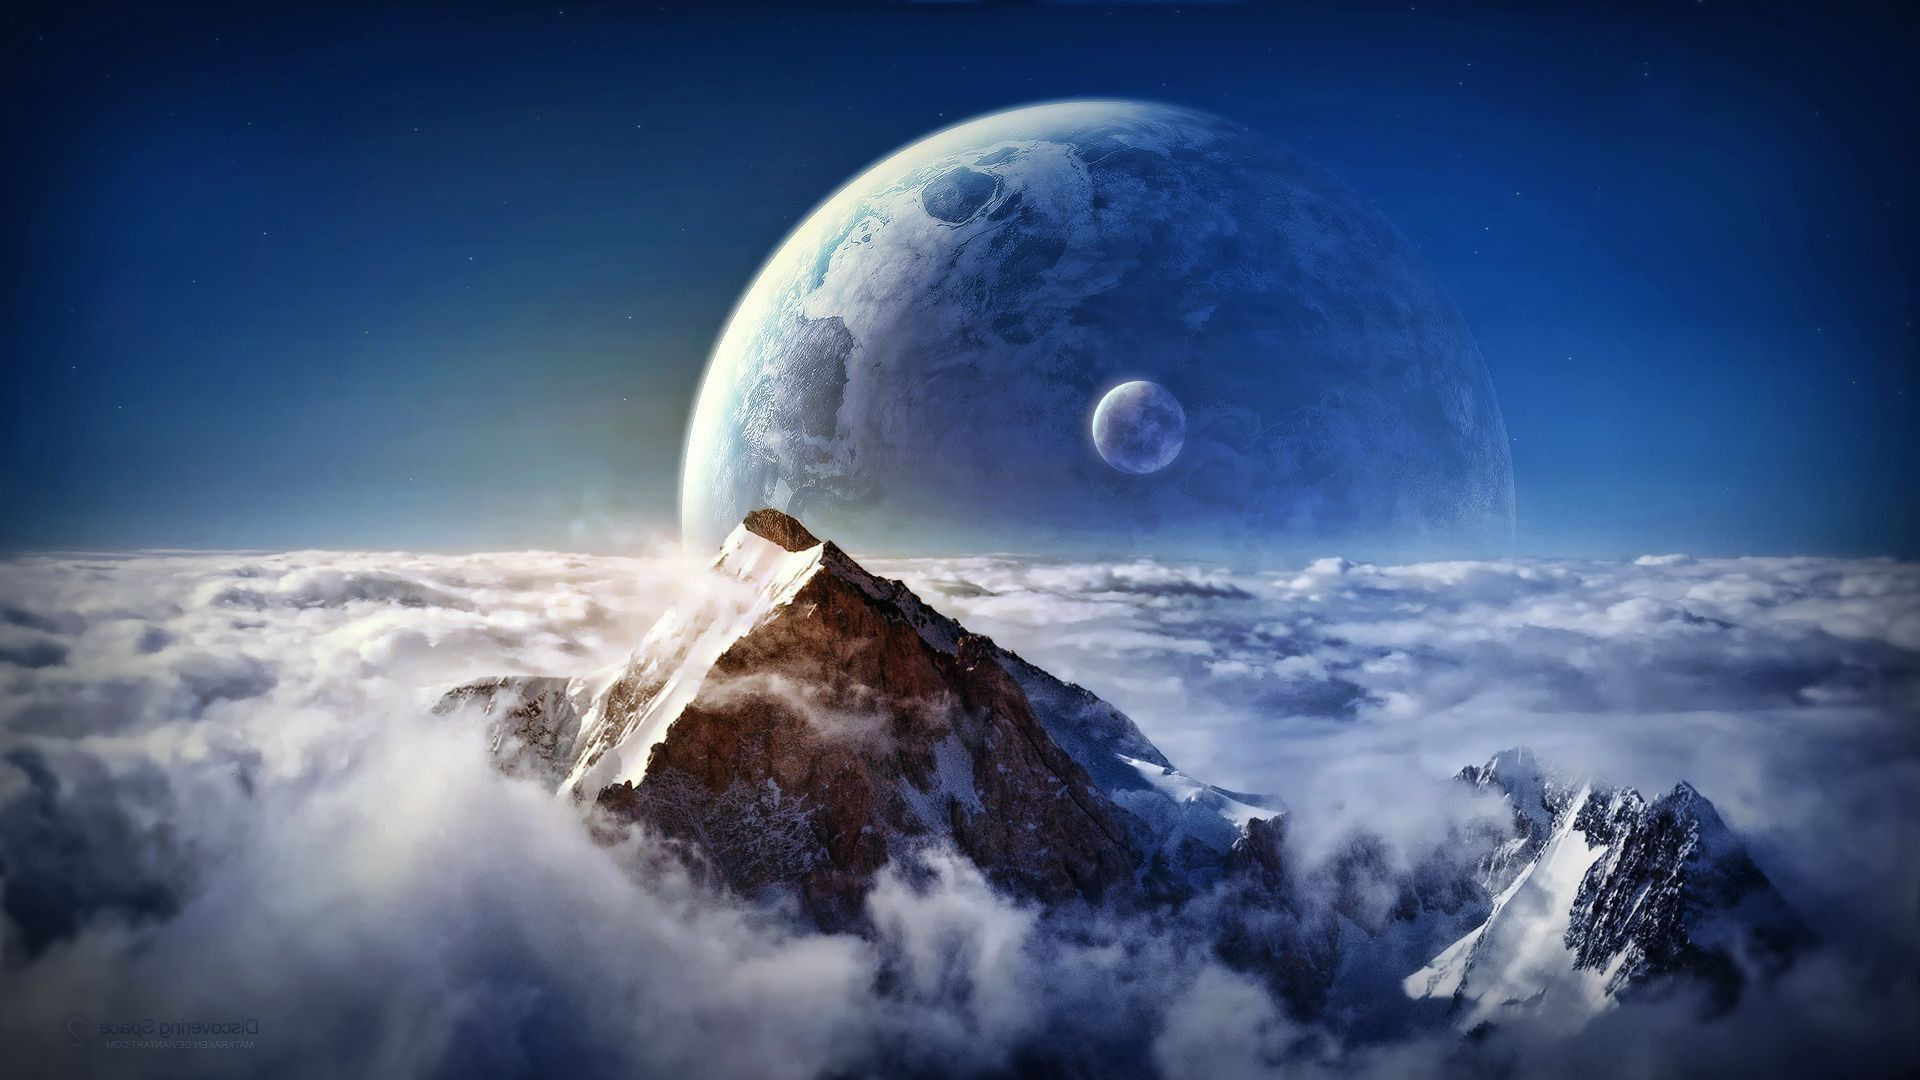 Space The Moon In The Mountains